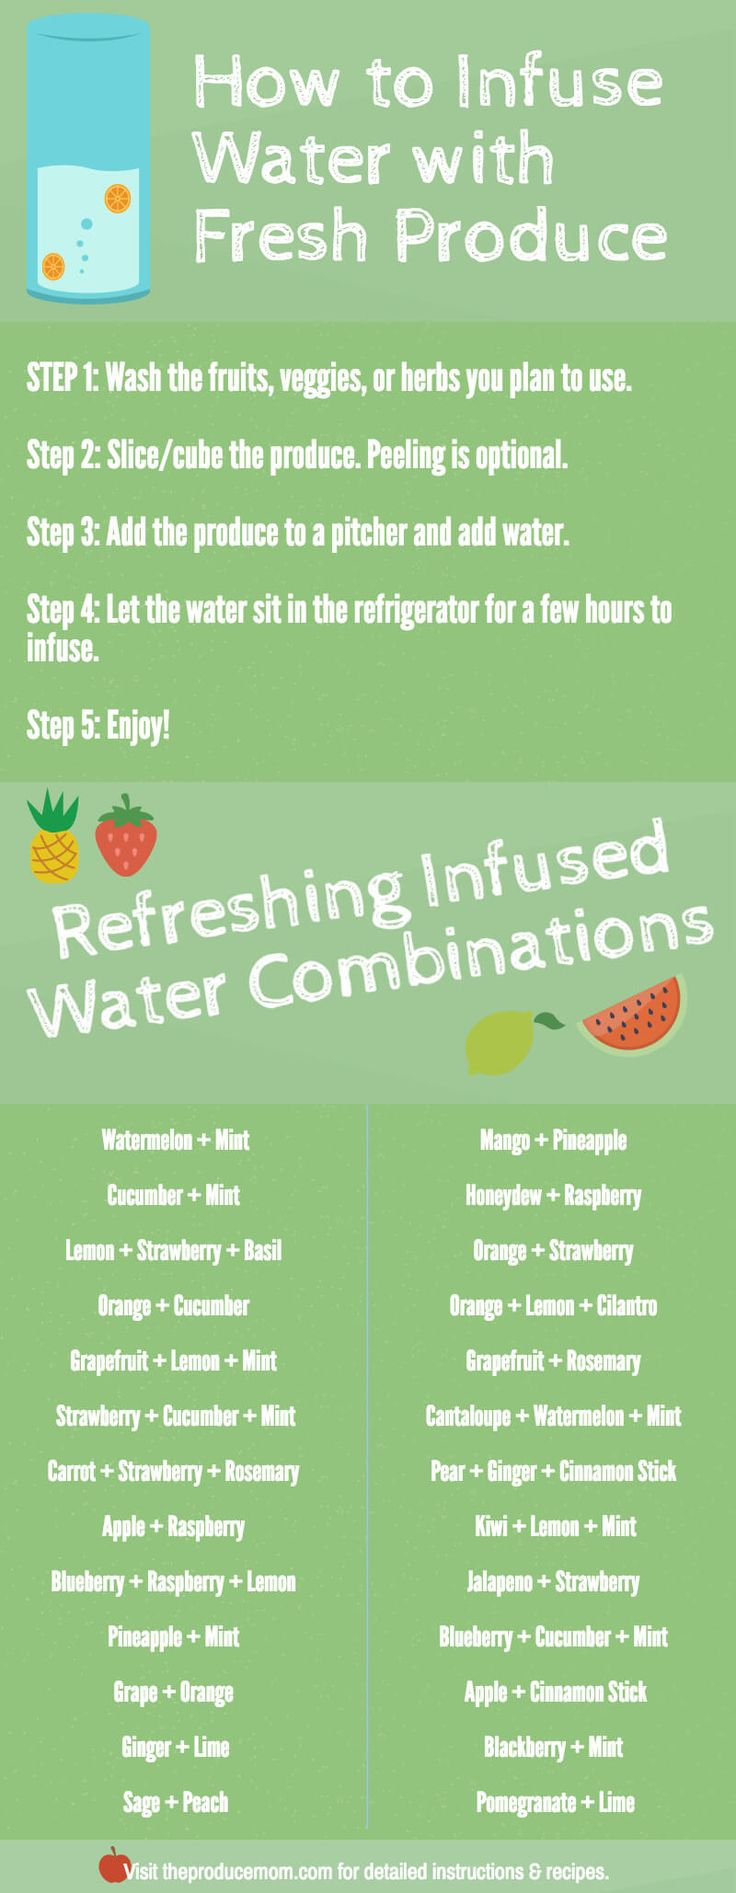 Infused water is a great way to encourage kids to try new produce items!